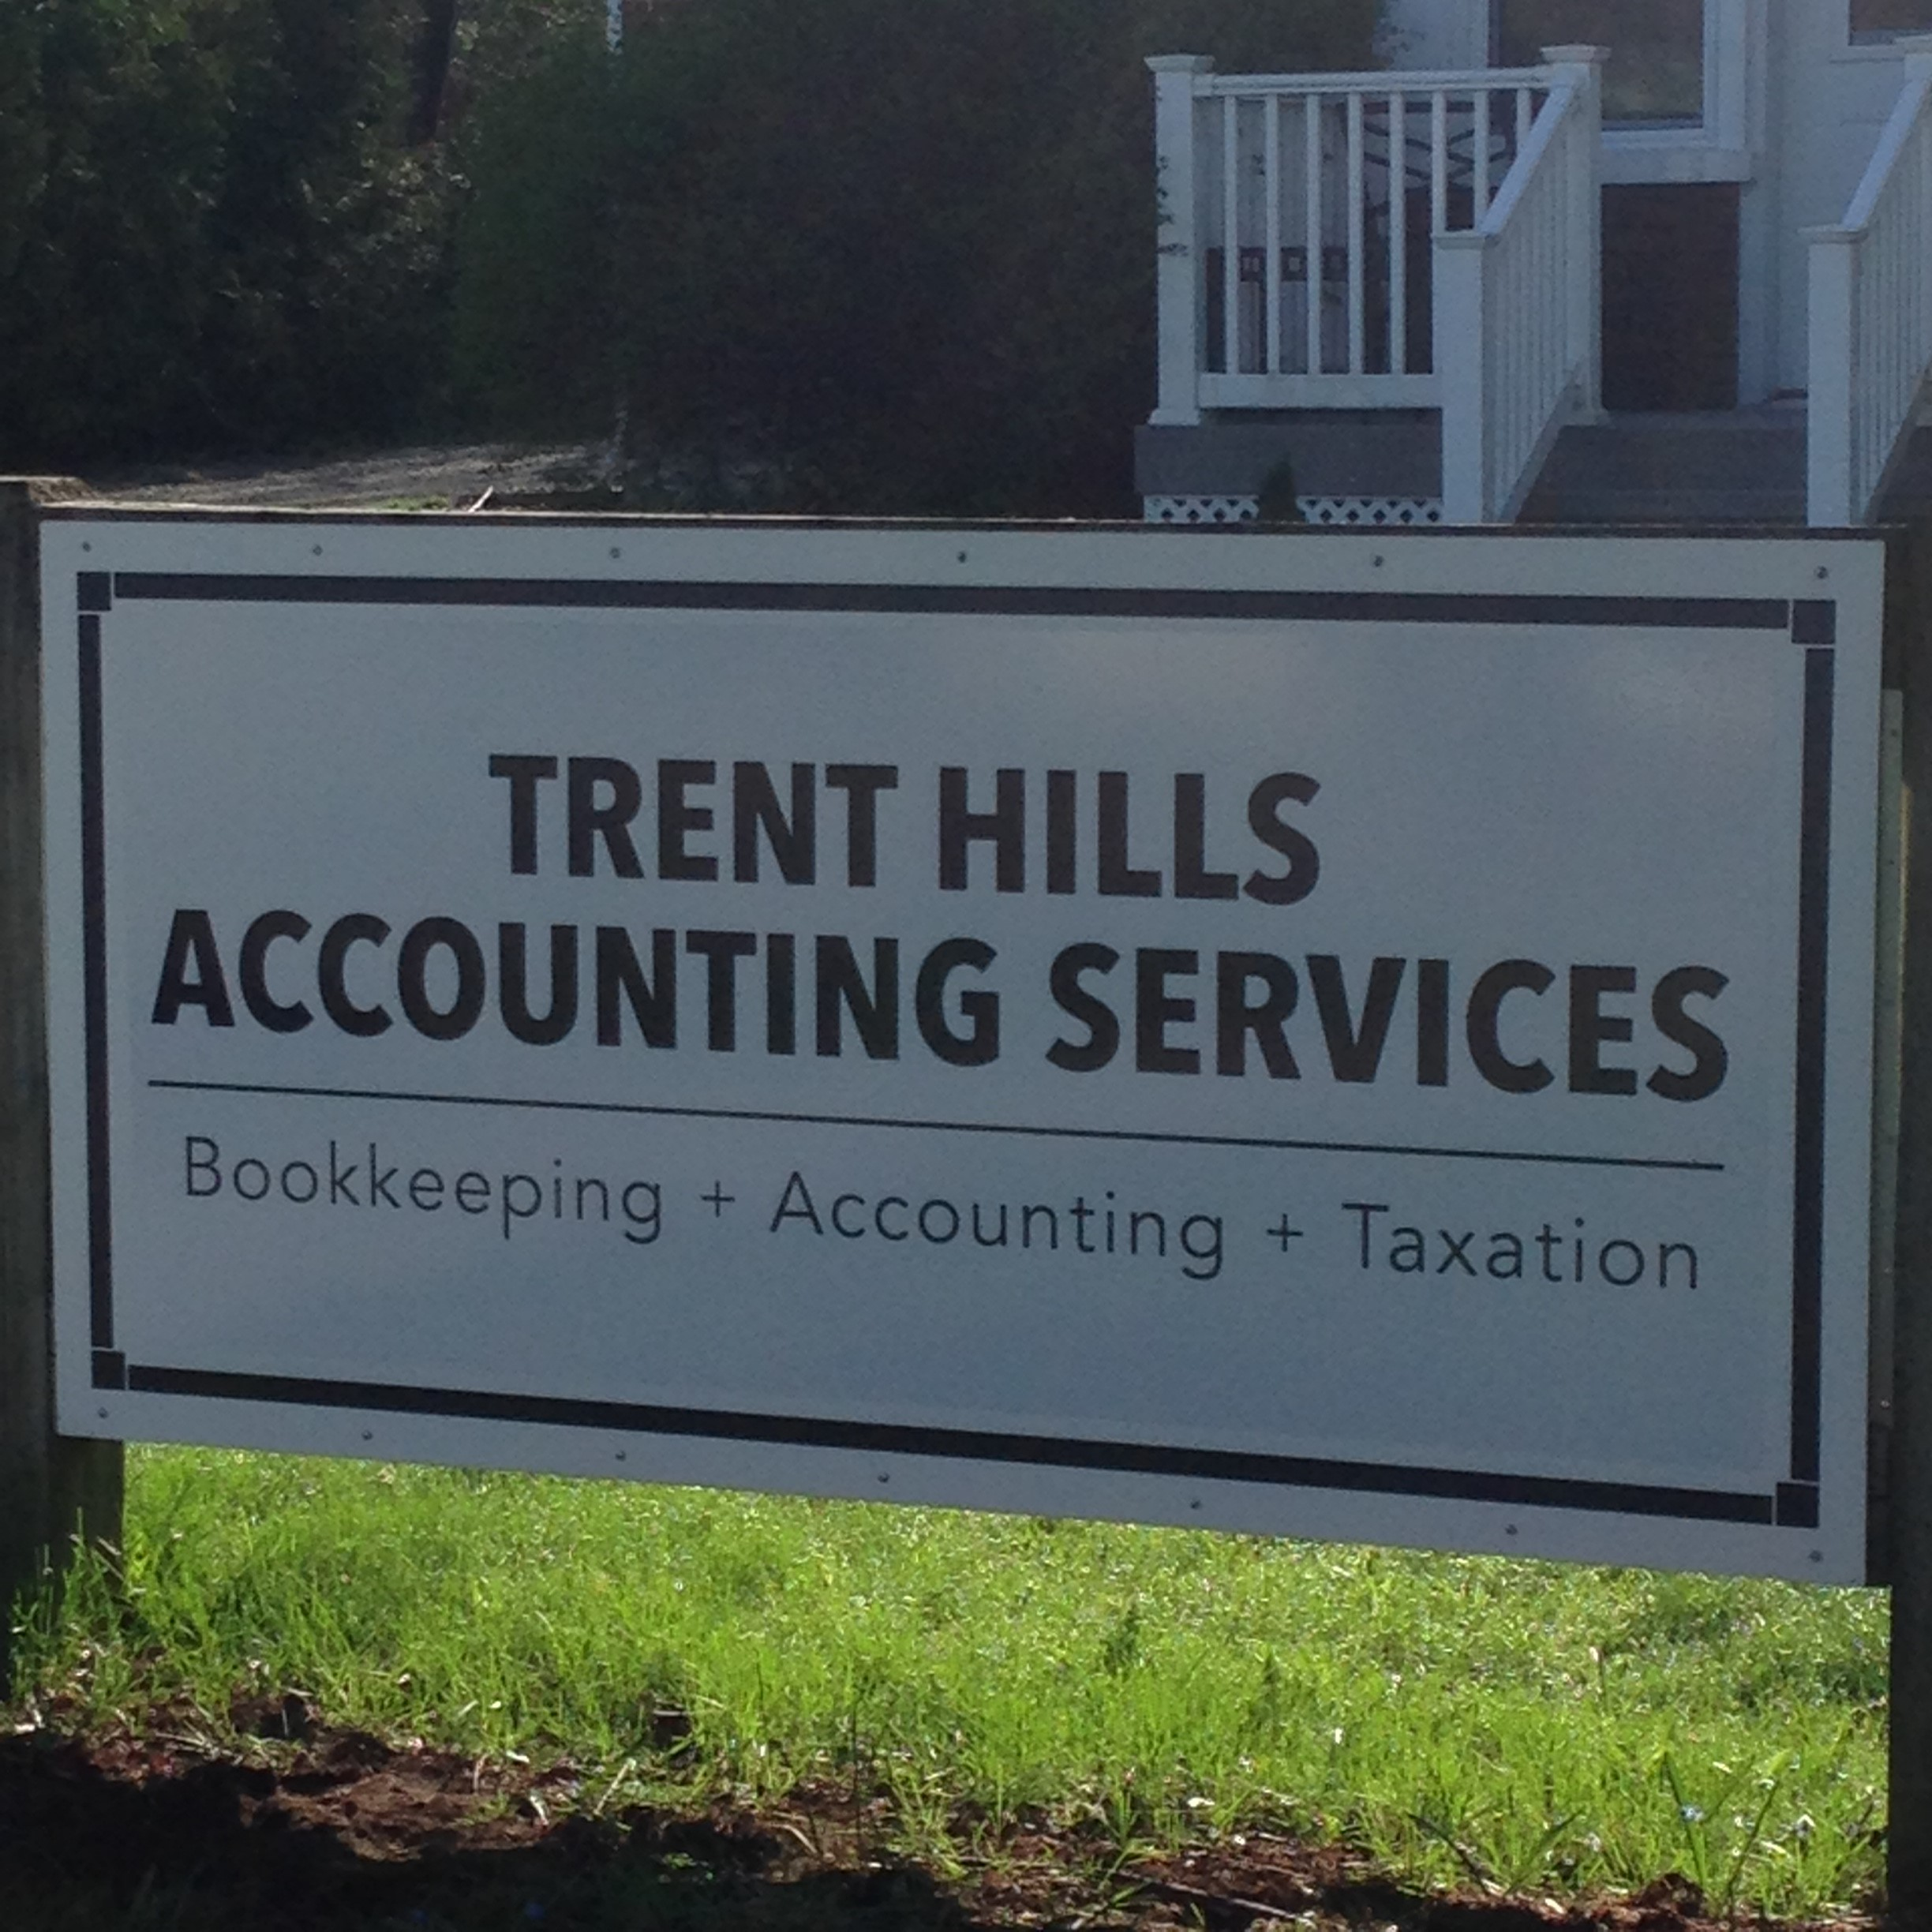 Trent Hills Accounting Services